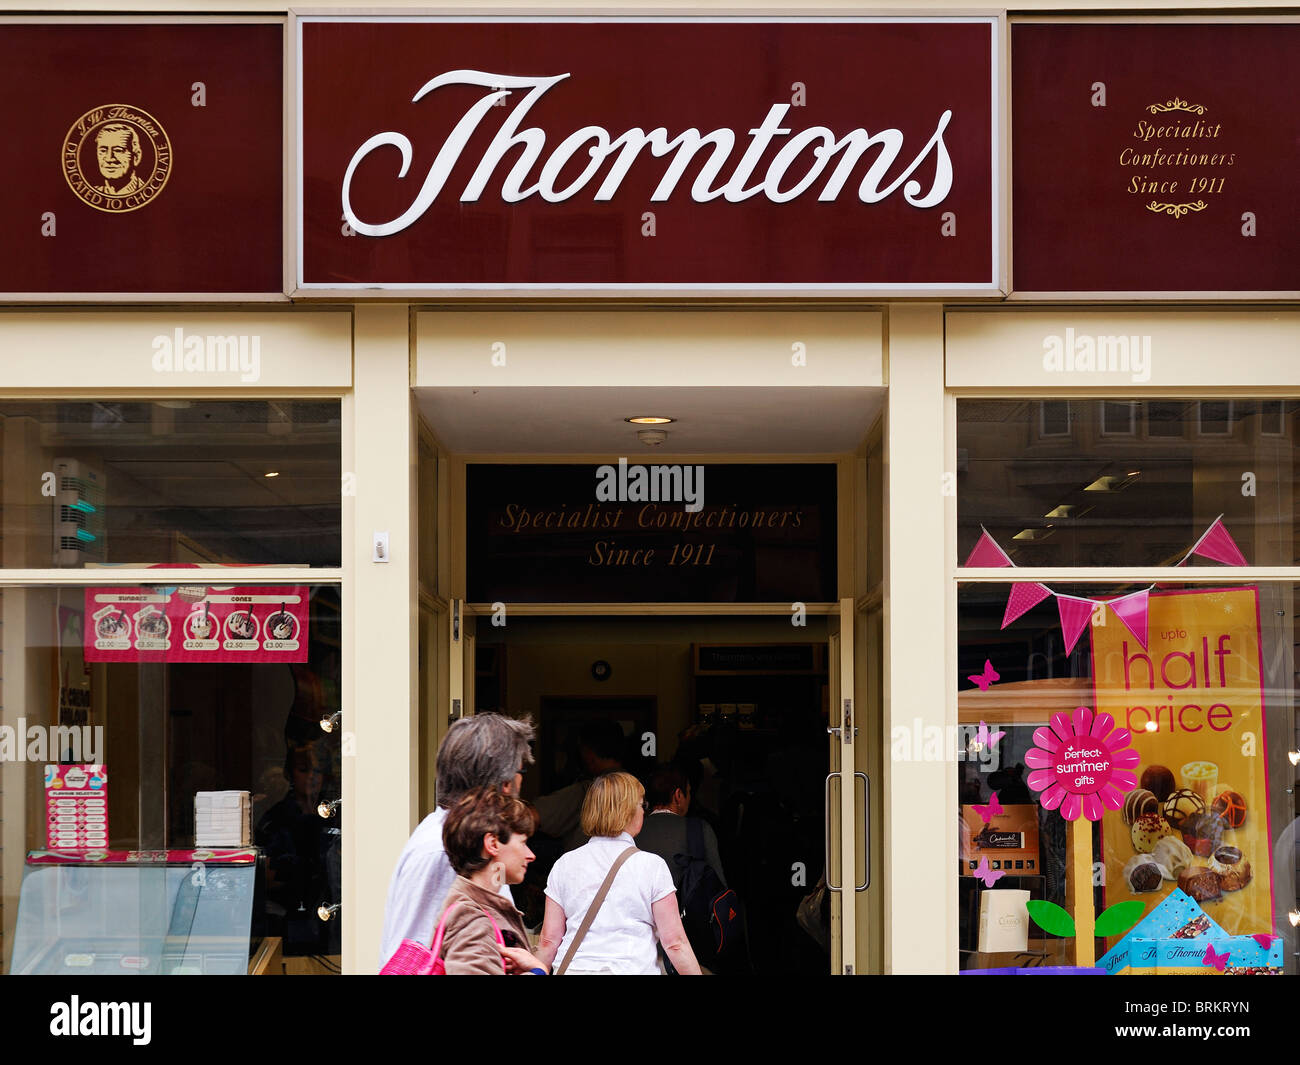 Thorntons Confectioners, Oxford, UK. - Stock Image